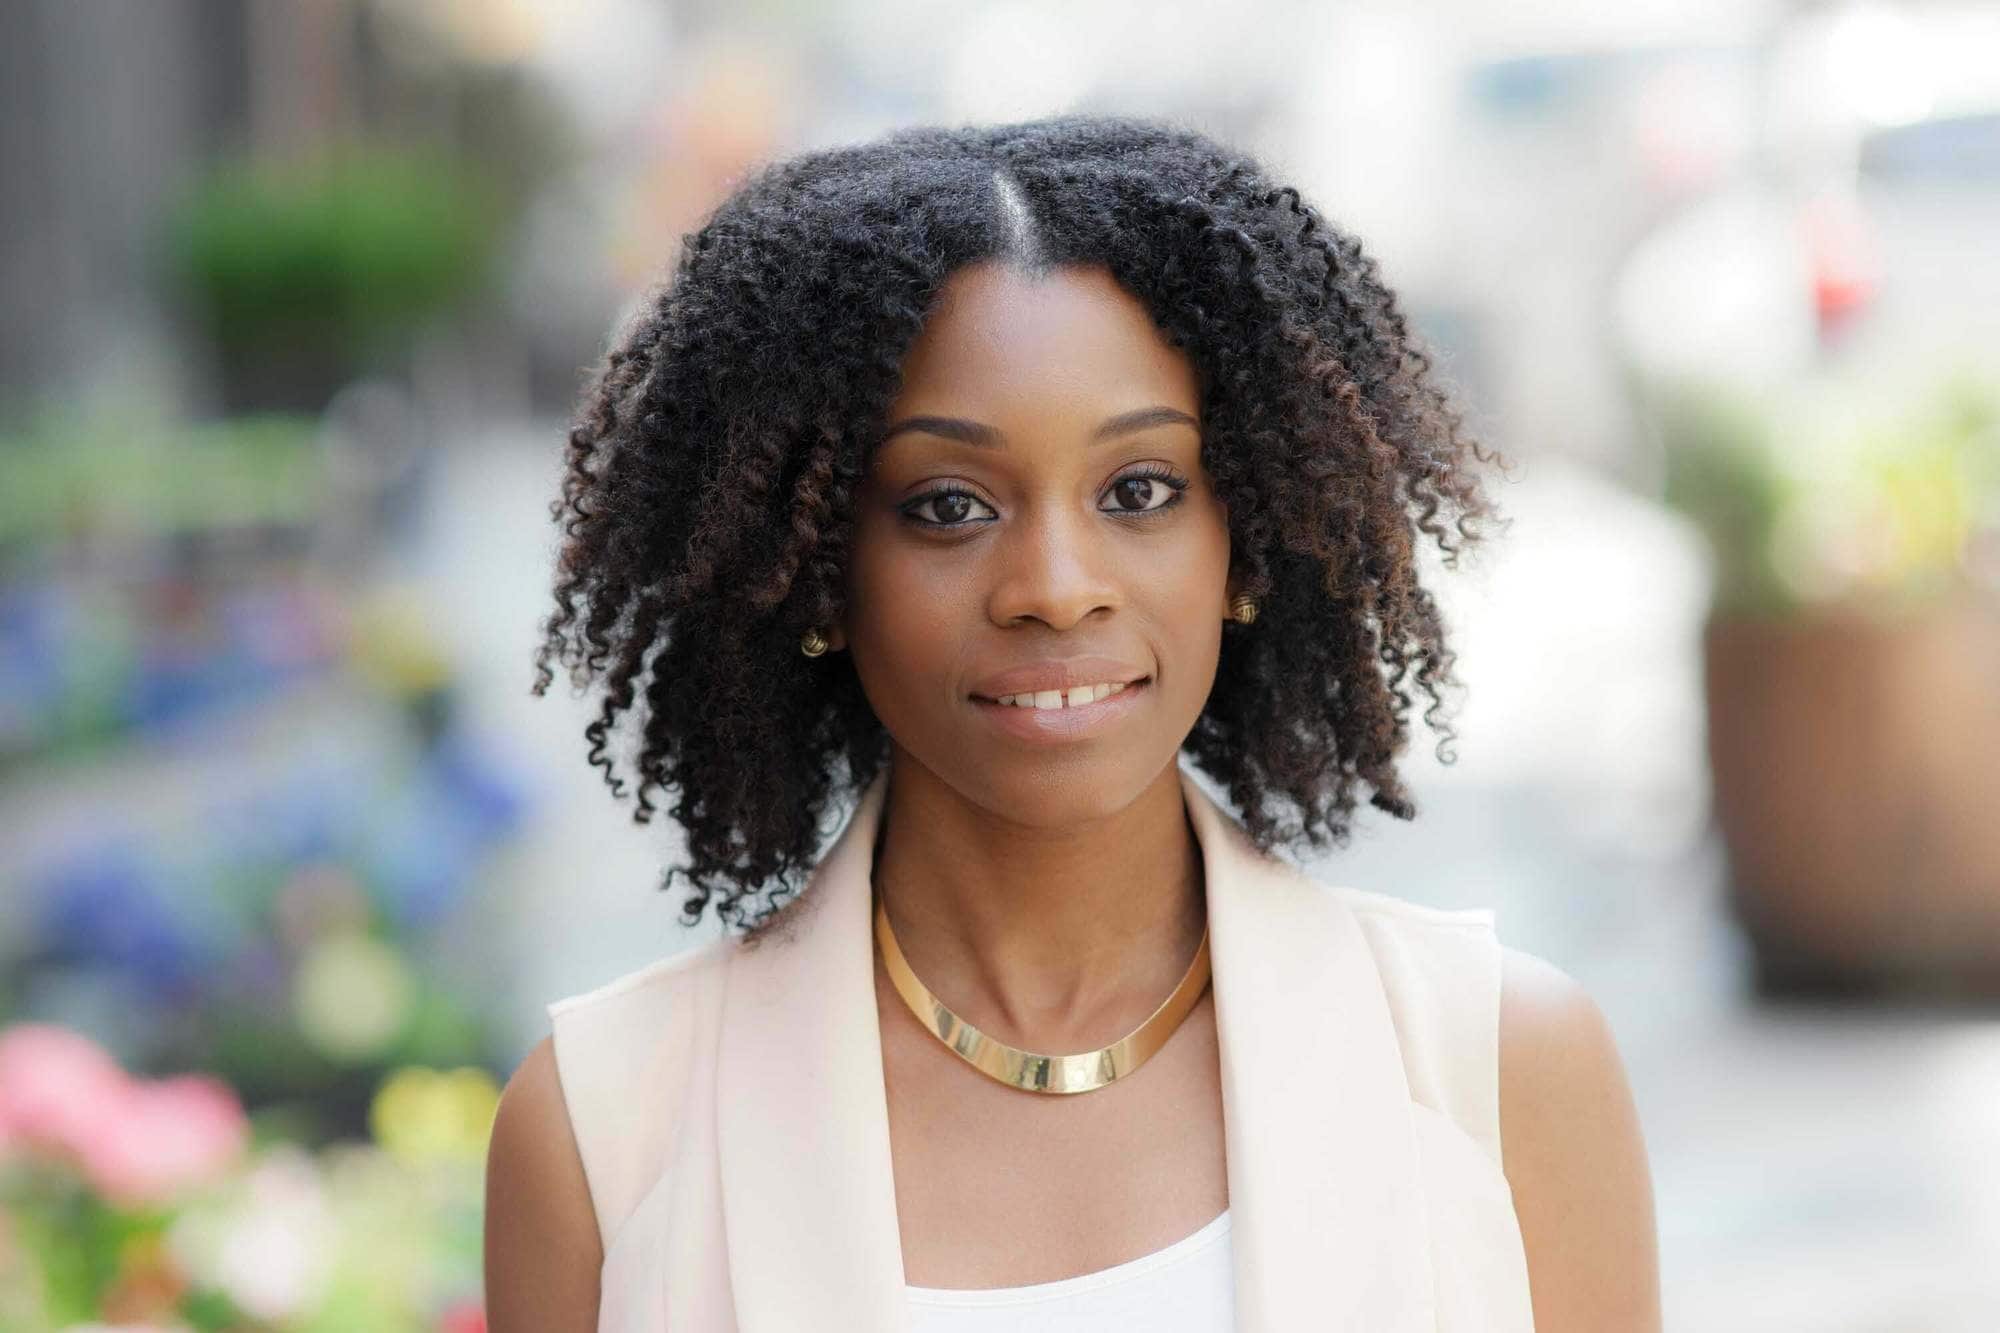 braid out style worn down on natural hair